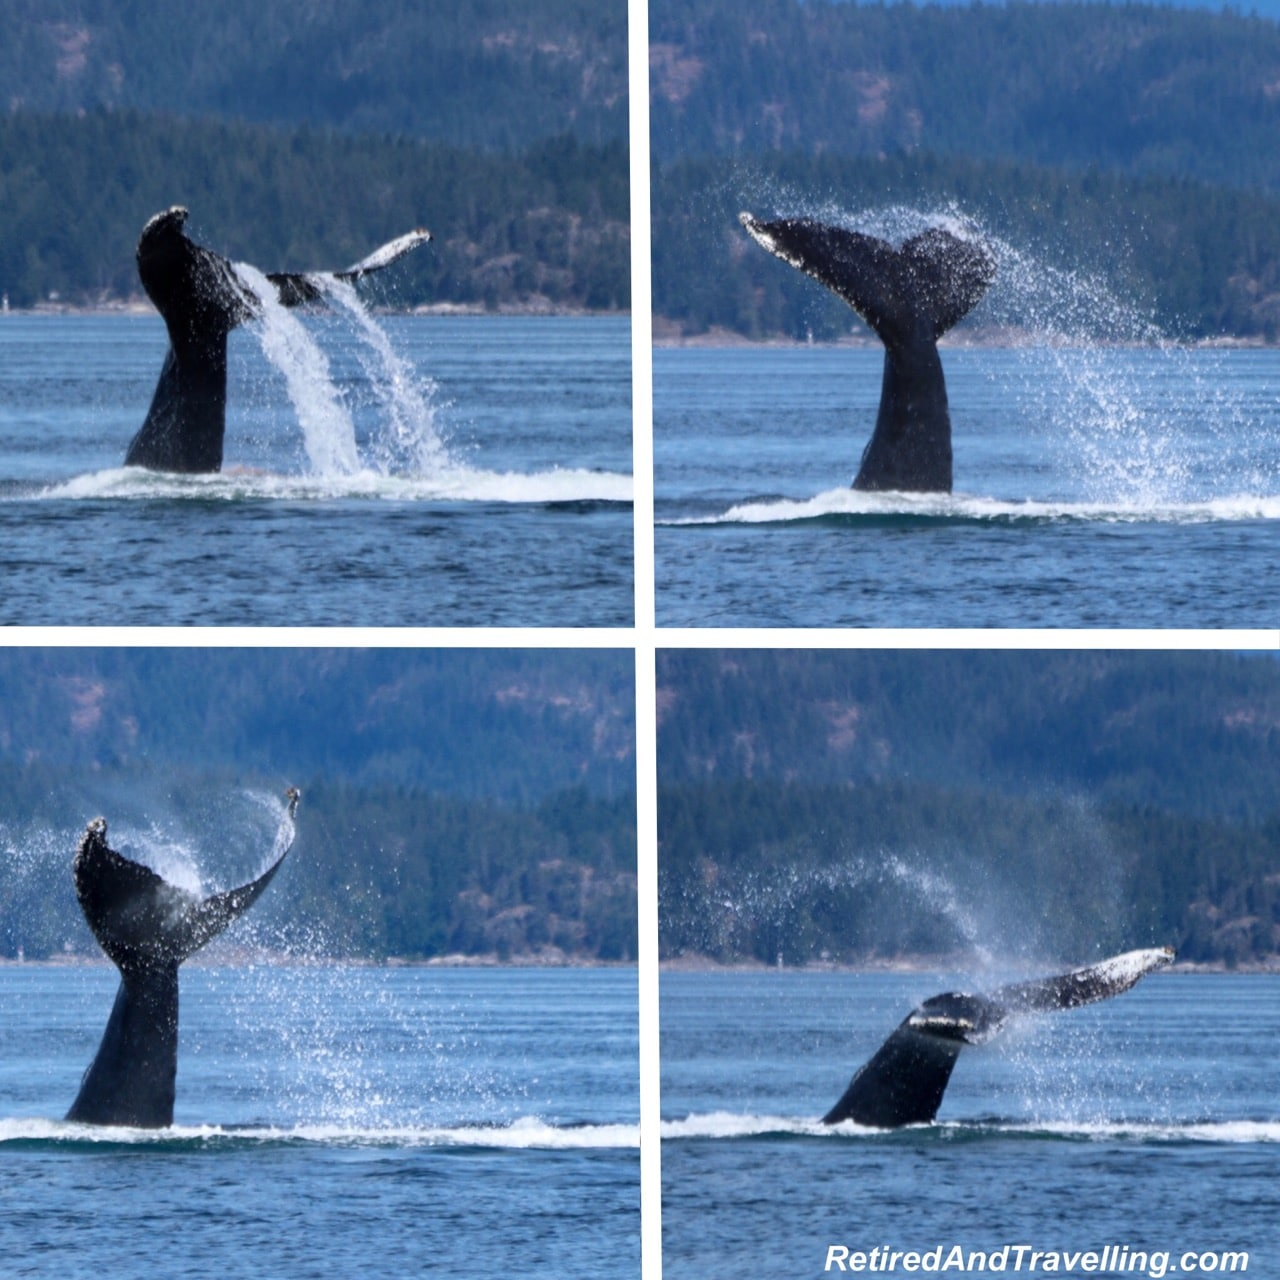 Tail Splash Humpback Whale Watching Adventure Quest Canada - Wildlife And Whales On Vancouver Island.jpg